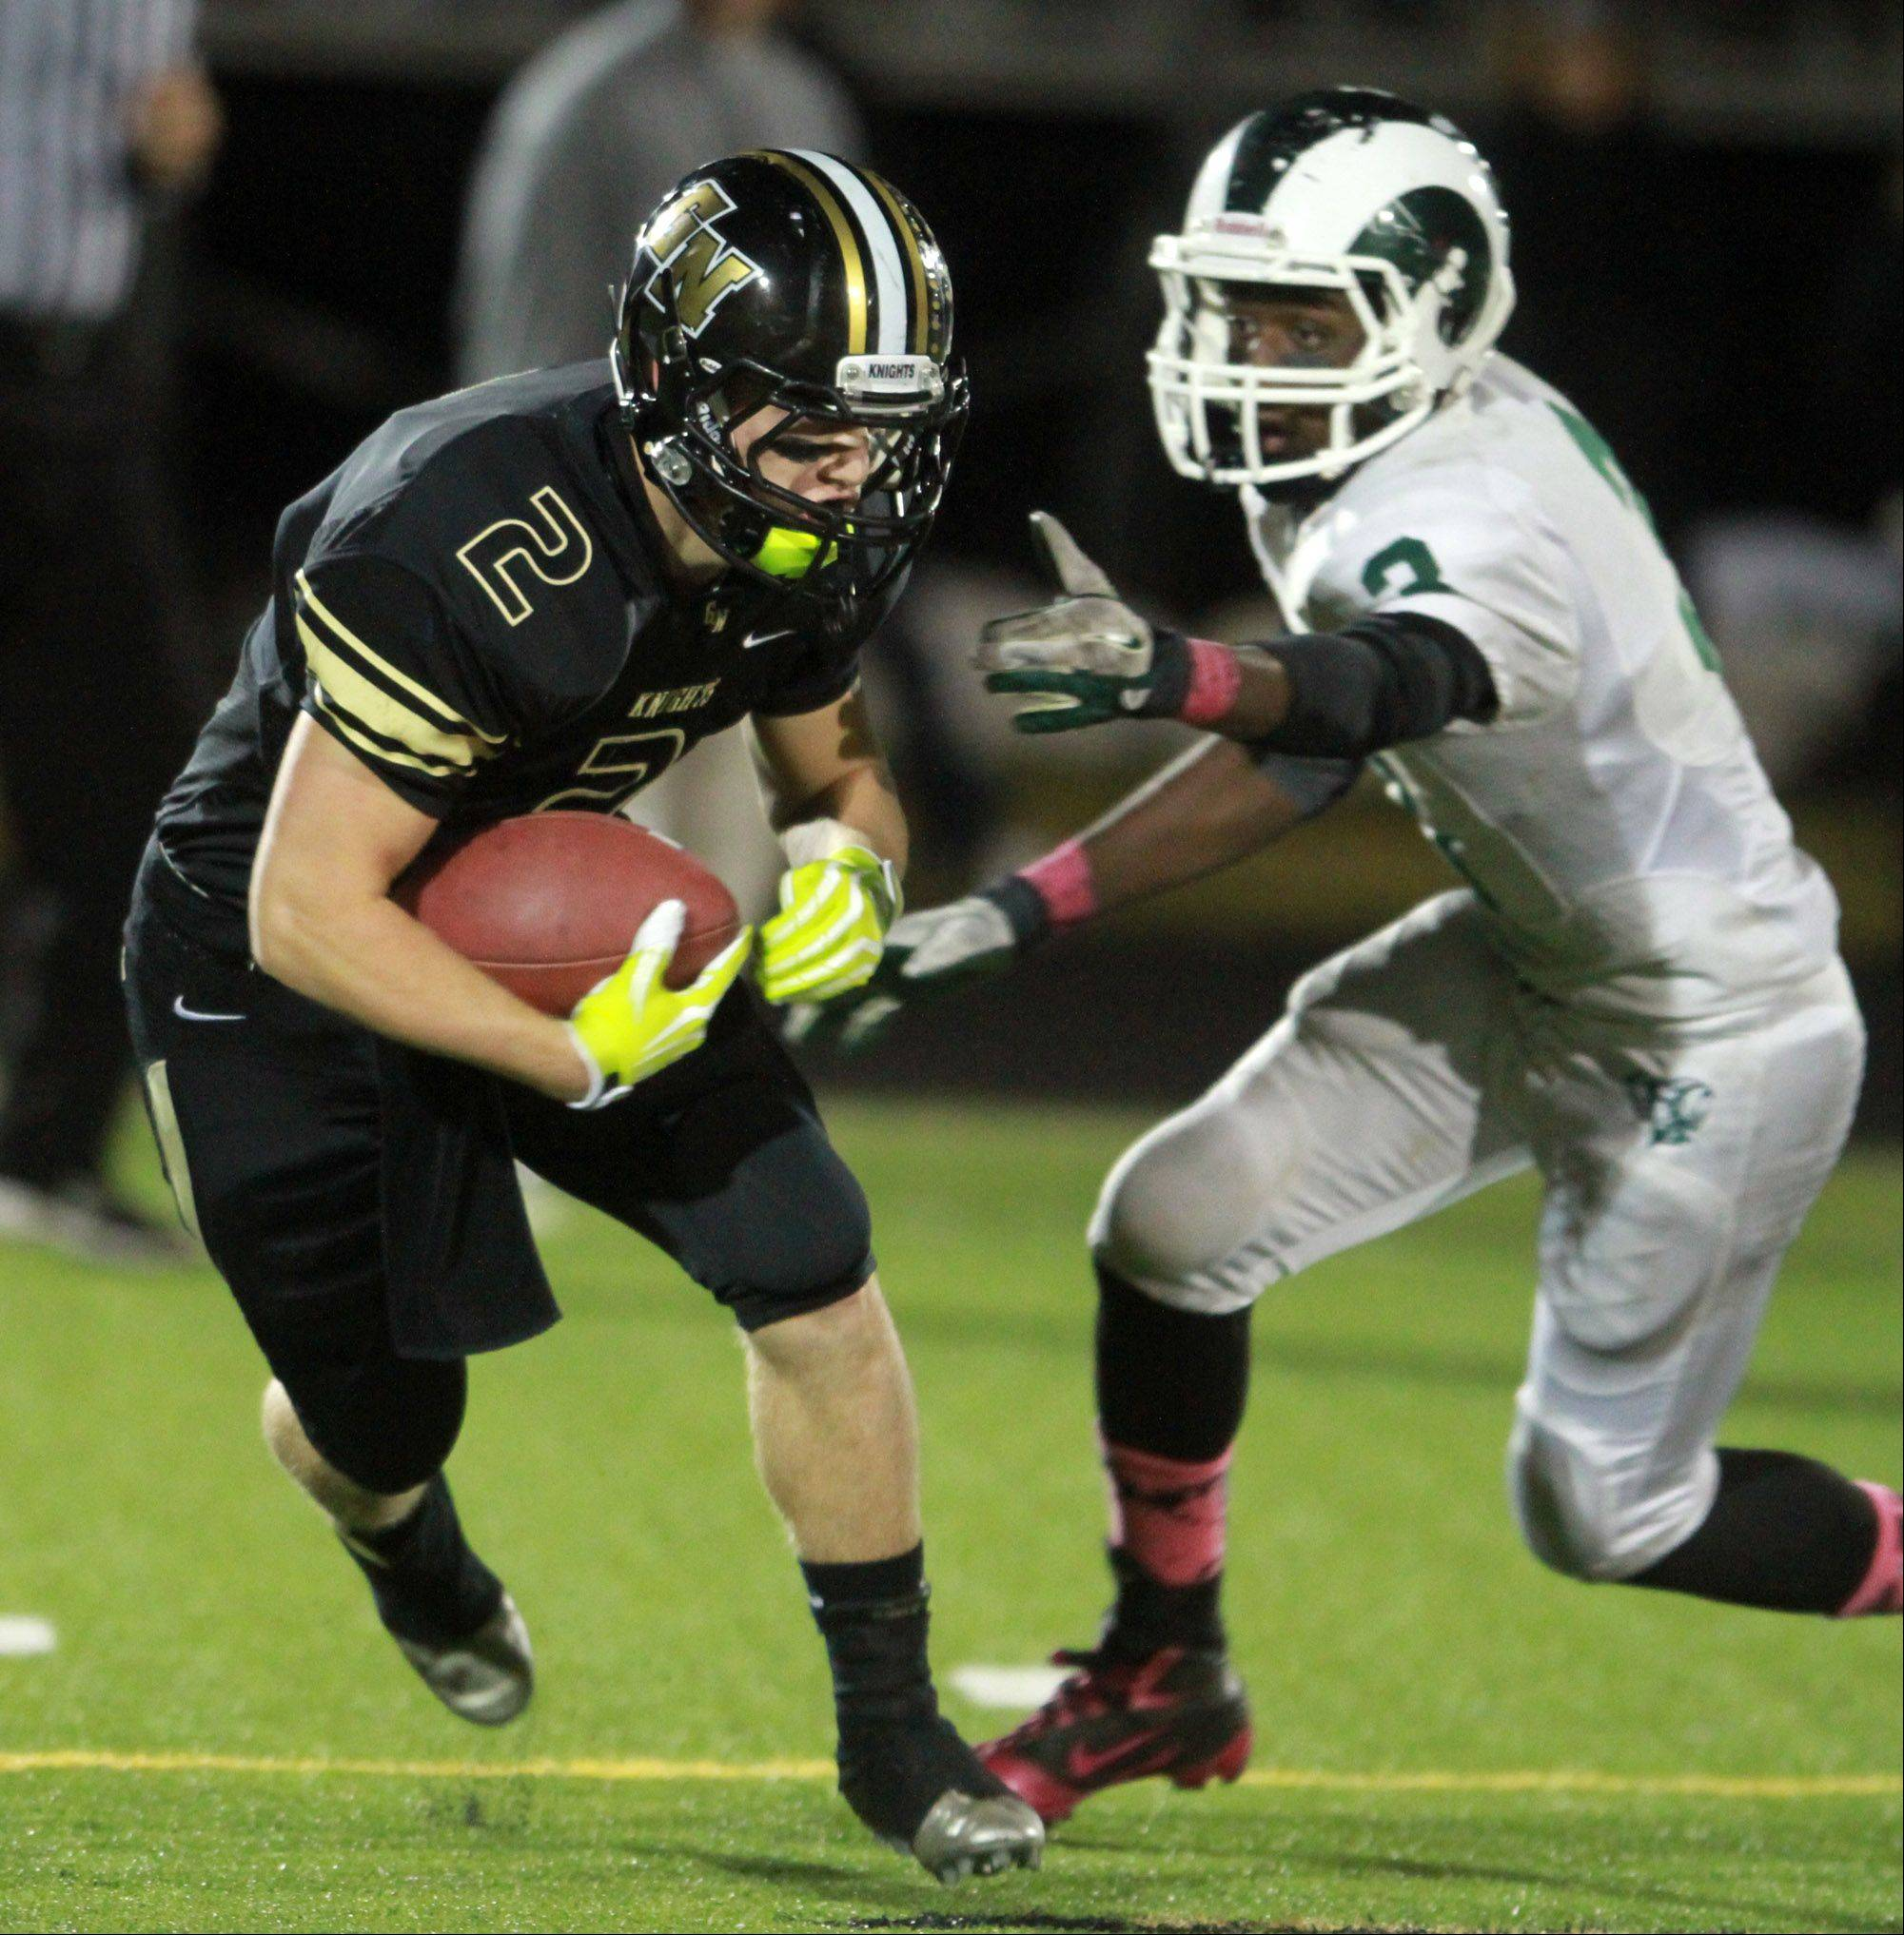 Grayslake North wide receiver Vincent Smith runs past Grayslake Central defender Davonta Jennings at Grayslake North.